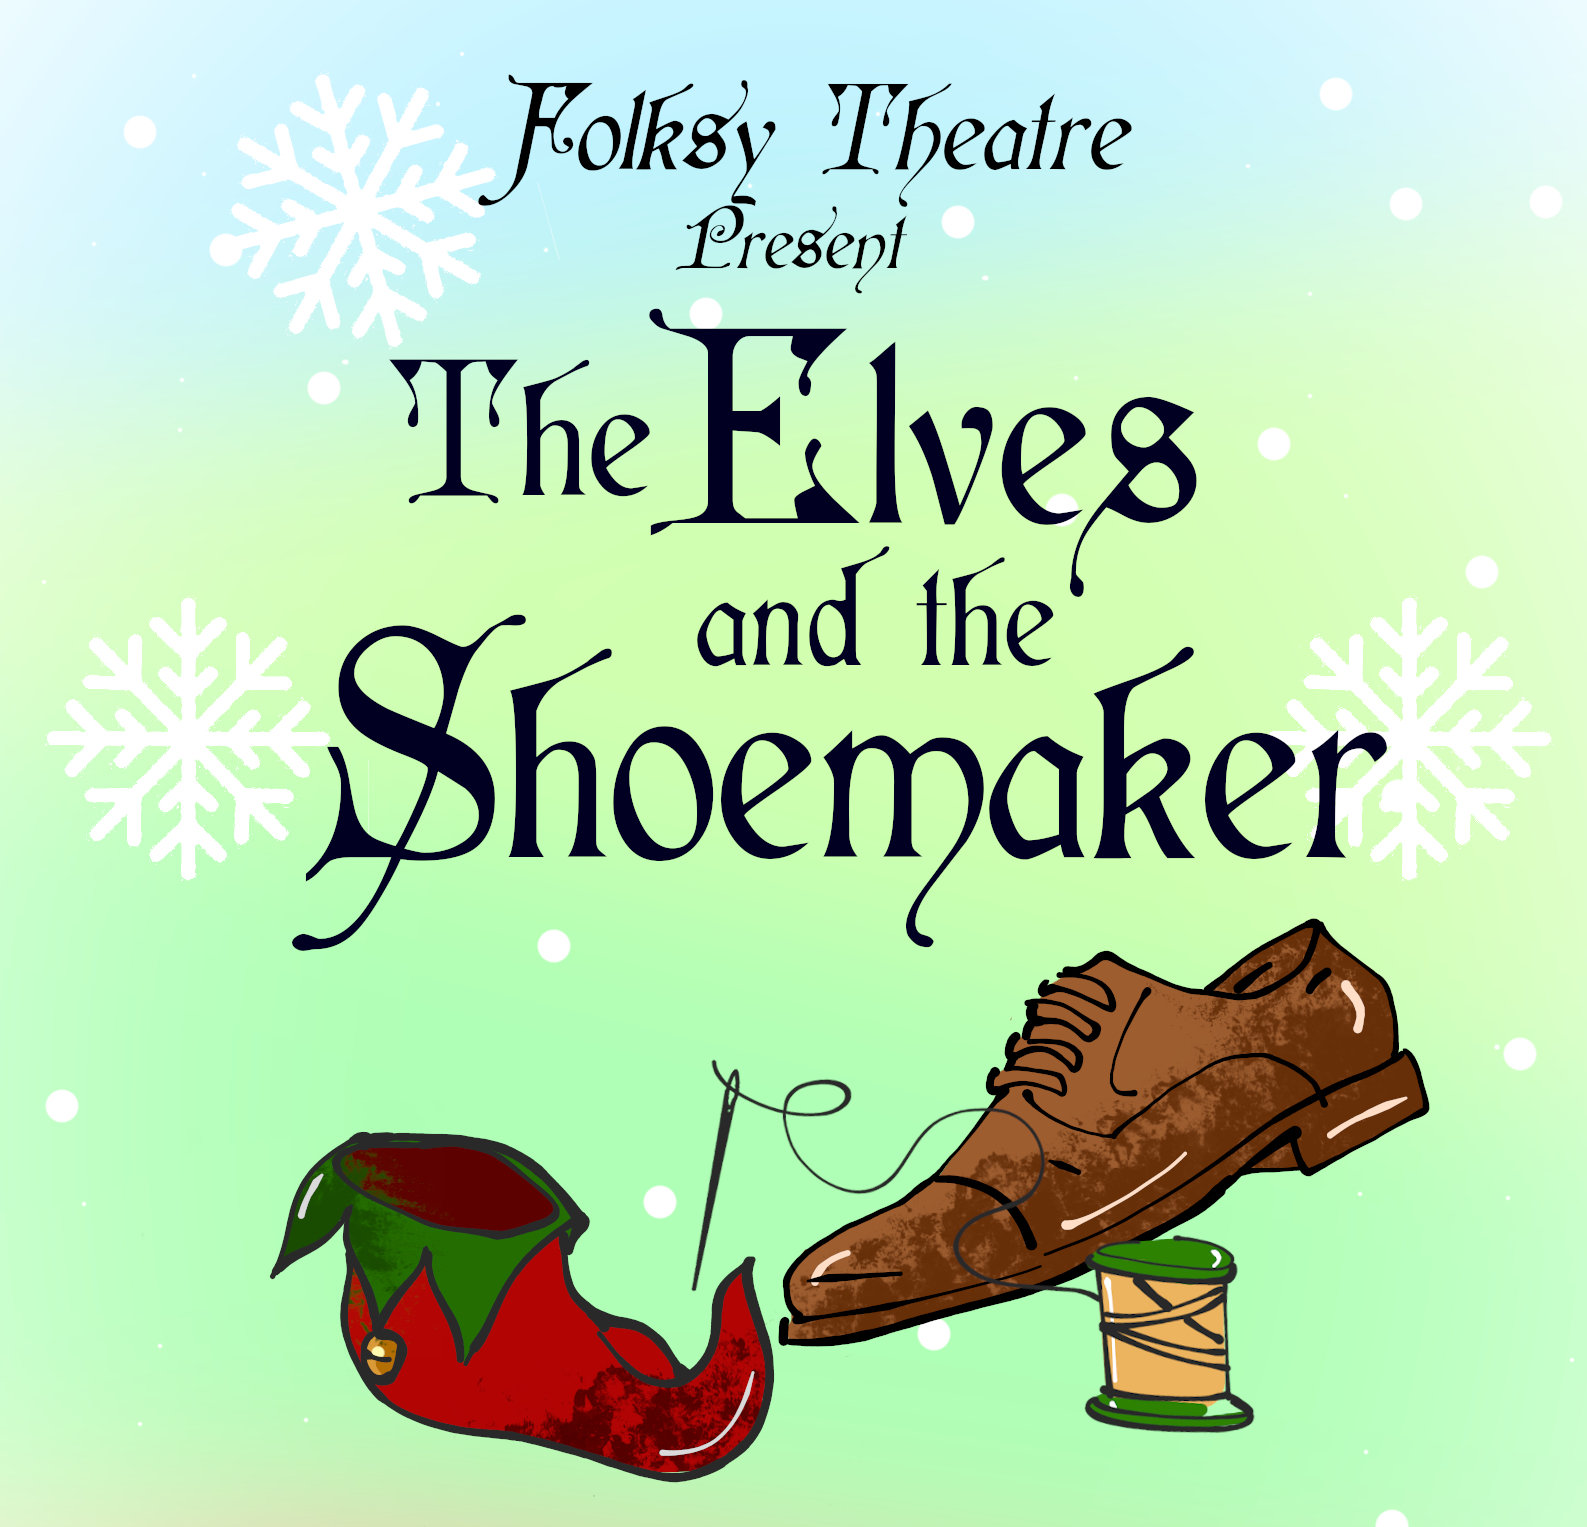 Christmas Theatre: The Elves and the Shoemaker